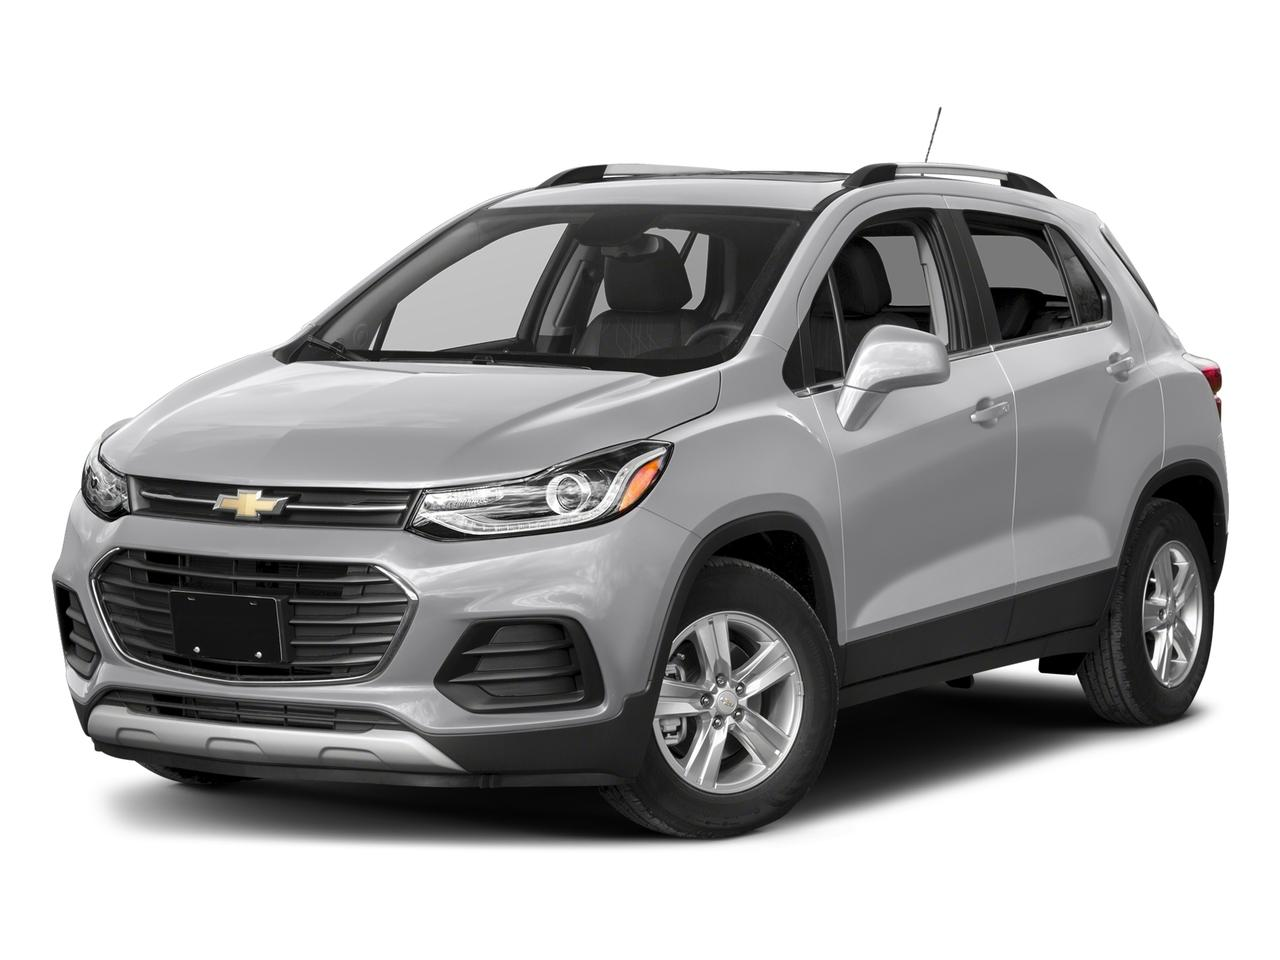 2017 Chevrolet Trax Vehicle Photo in Quakertown, PA 18951